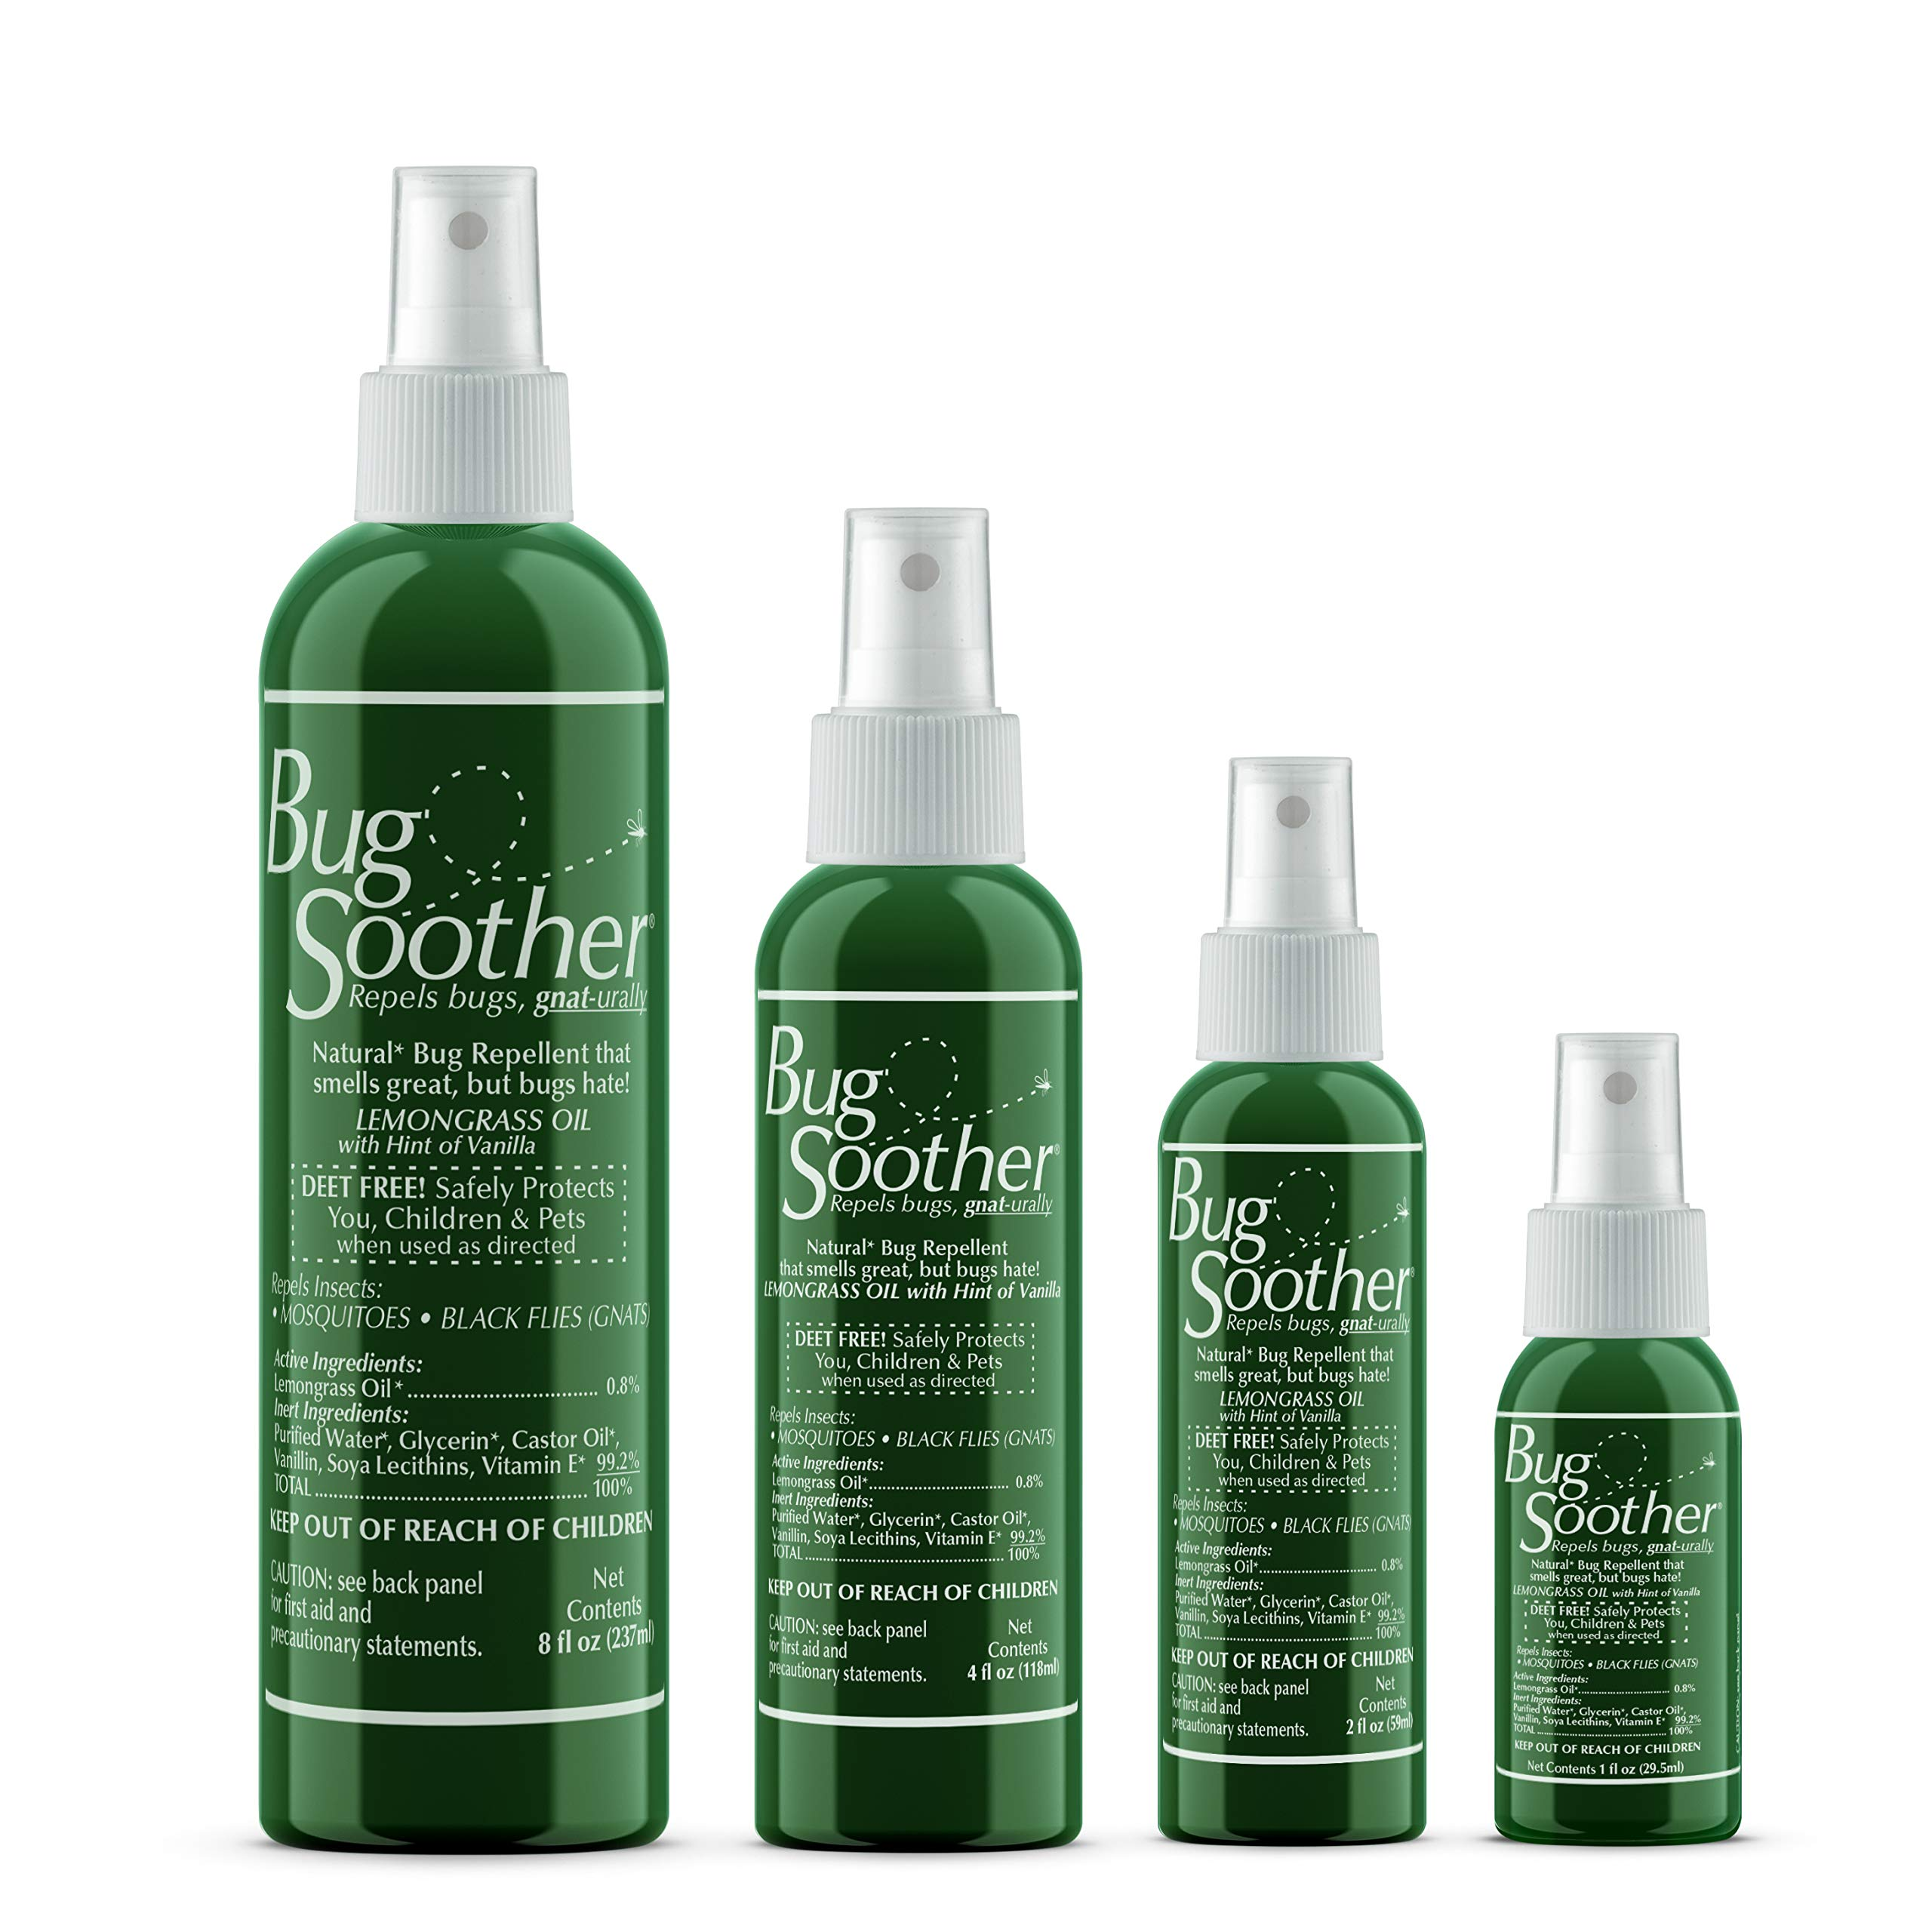 Bug Soother Spray Family Pack - Natural Insect, Gnat and Mosquito Repellent & Deterrent with Essential Oils - DEET Free - Safe Bug Spray for Adults, Kids, Pets, Environment - Made in USA